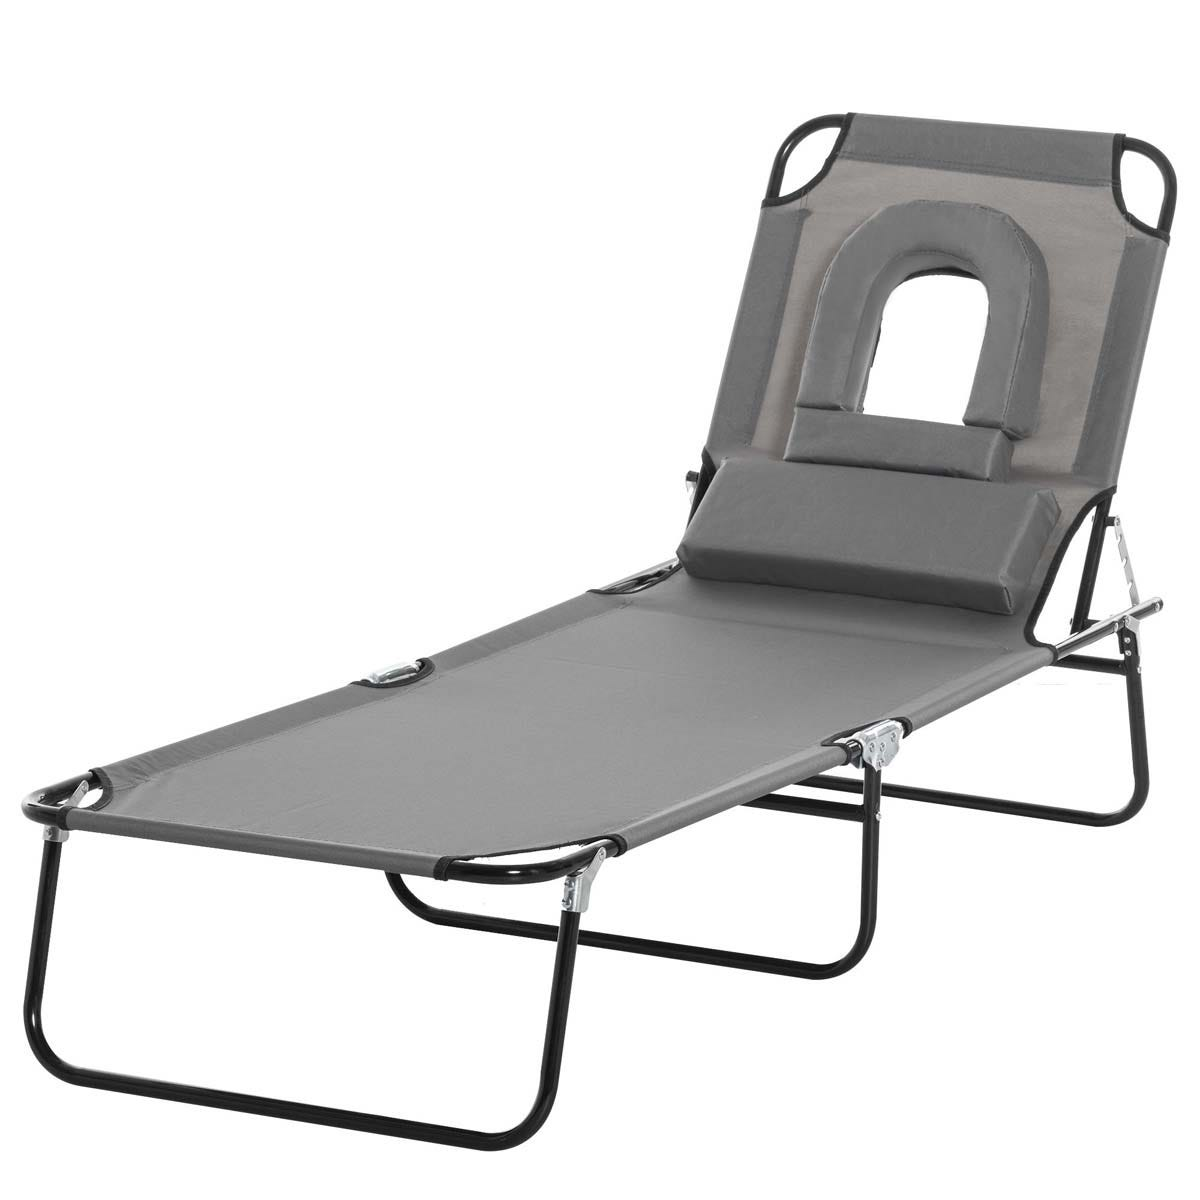 Outsunny Premium Folding Sun Lounger with Reading Hole - Grey